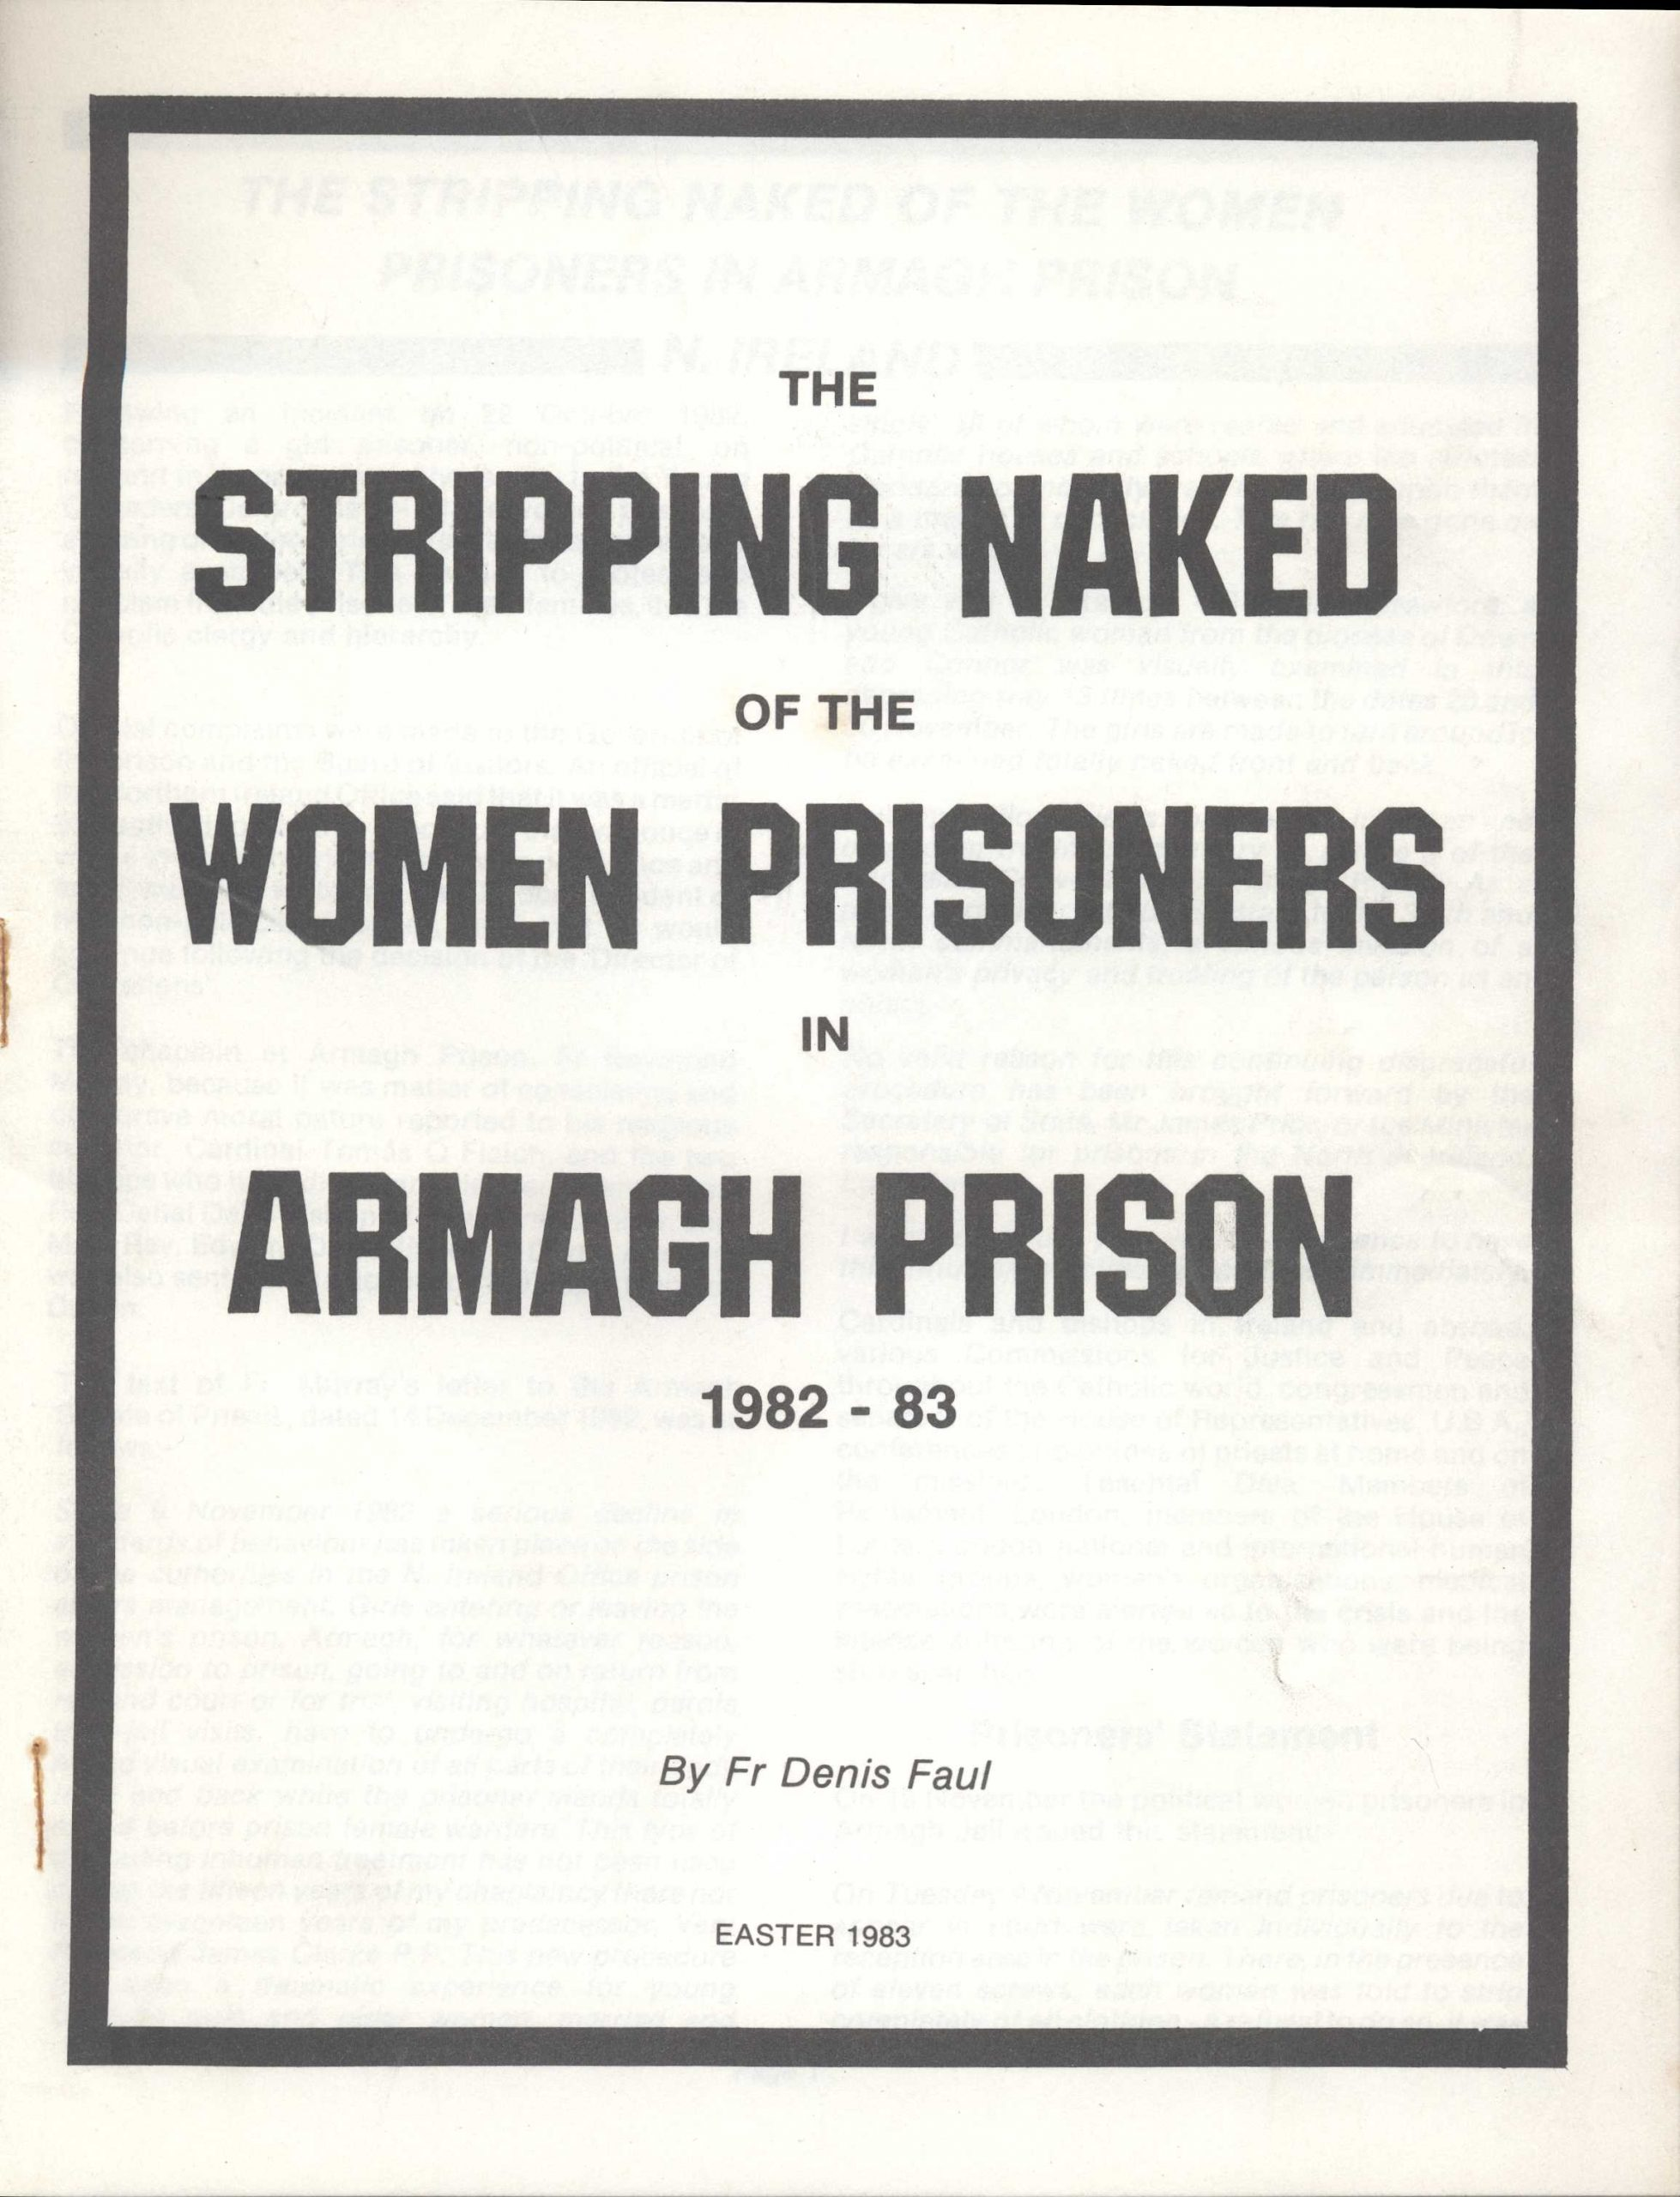 the stripping naked of the women prisoners in armagh prison